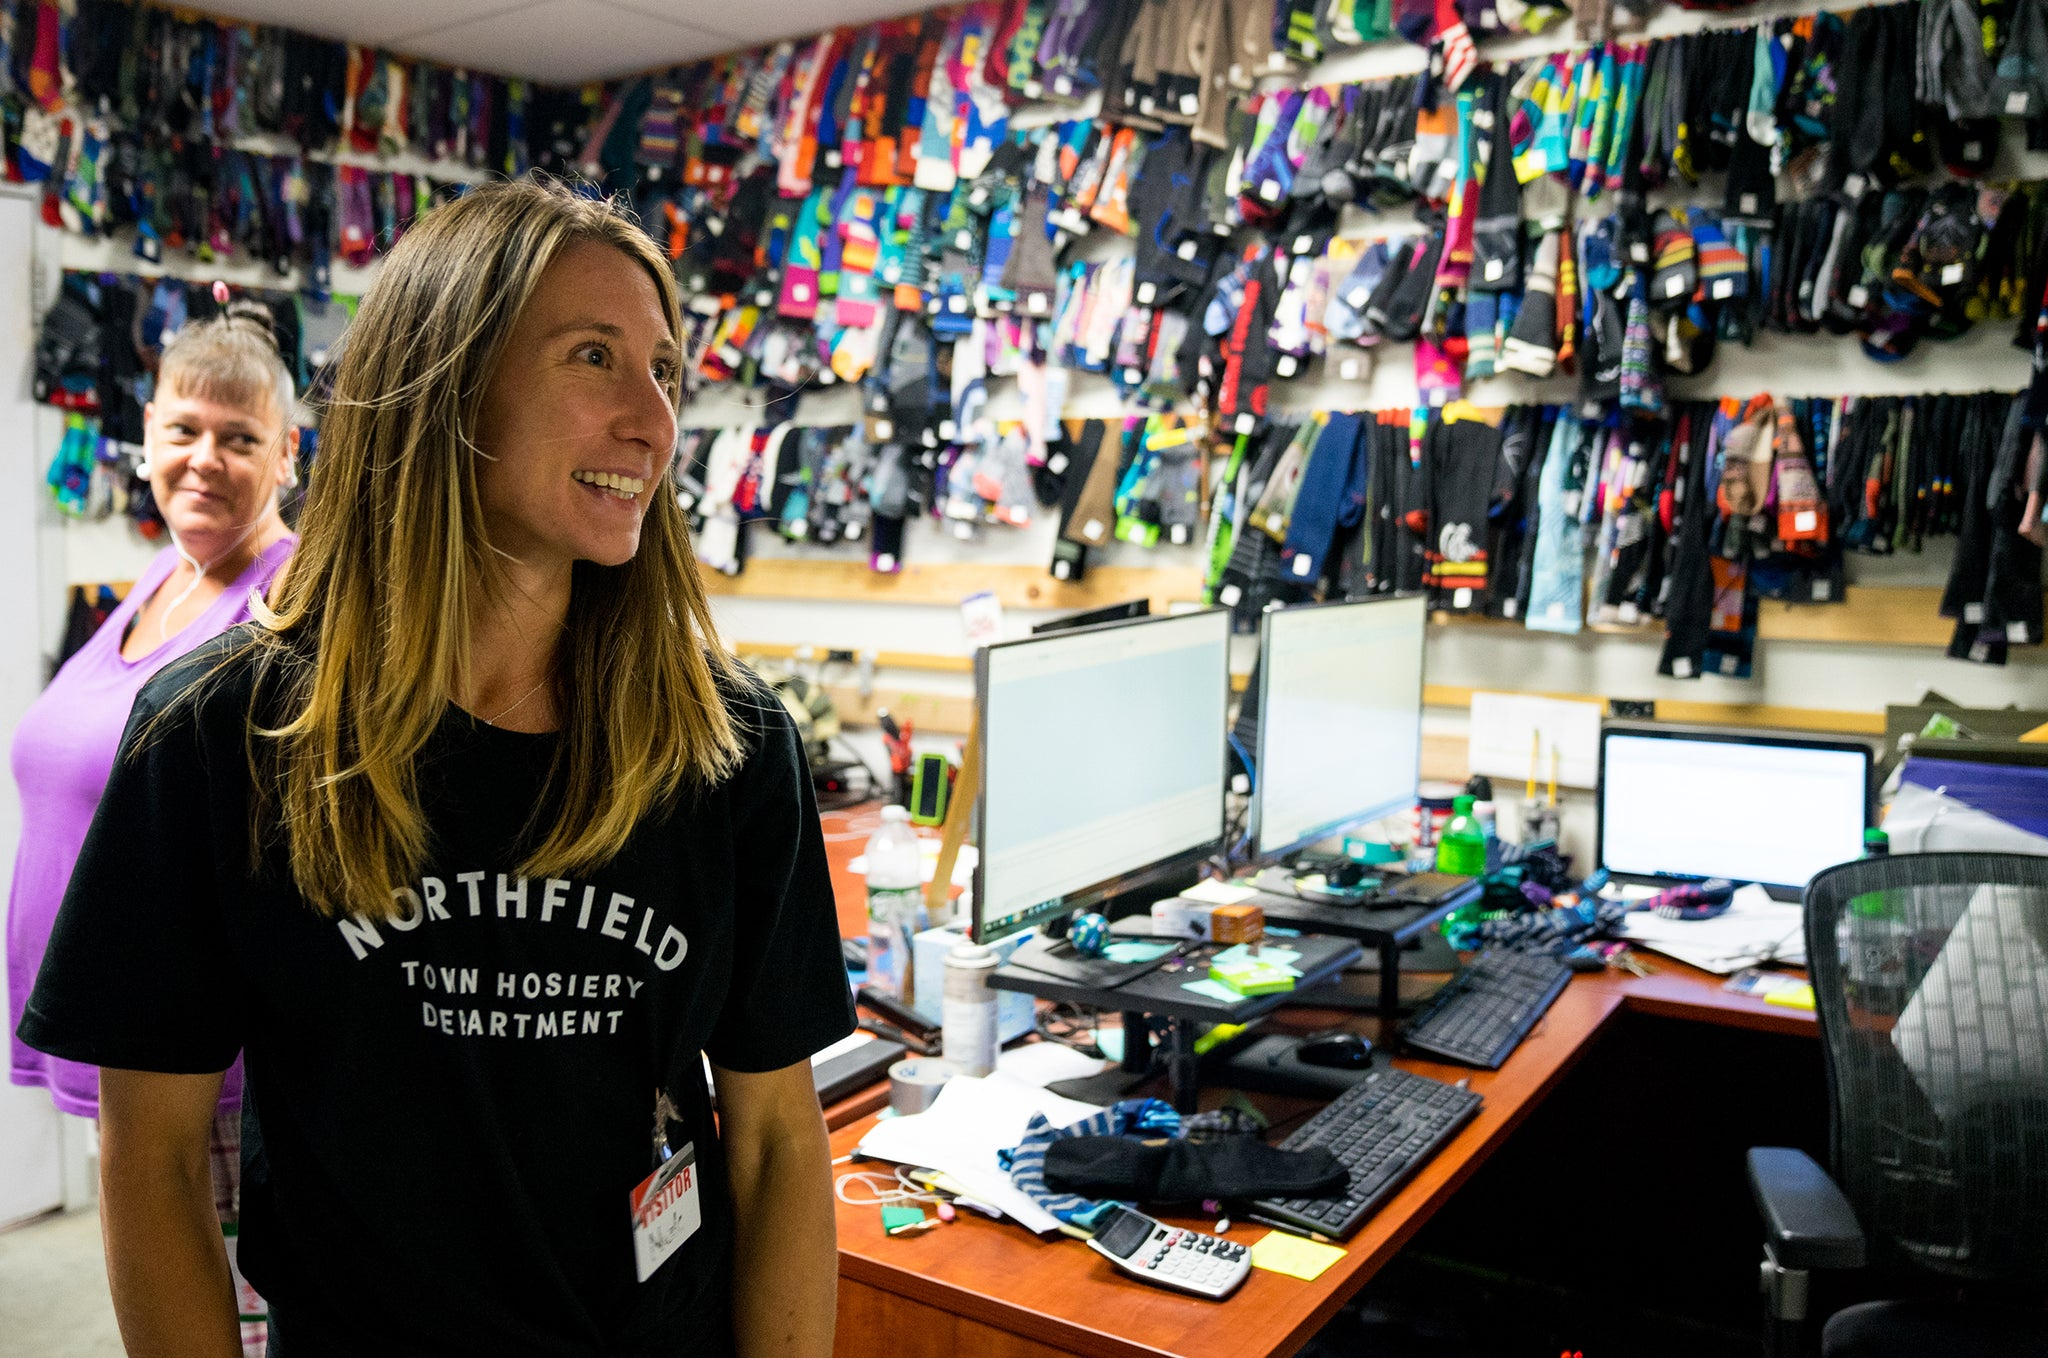 A woman smiles standing in a room where the walls are covered in socks.